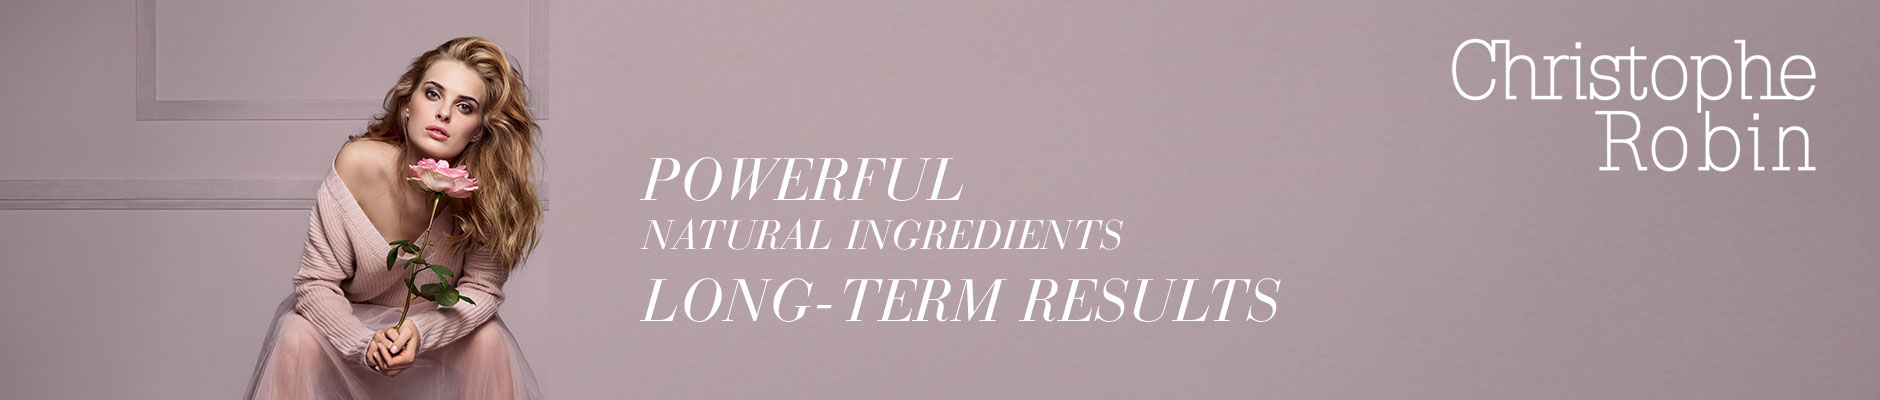 Christophe Robin - Powerful natural ingredients, long-term results